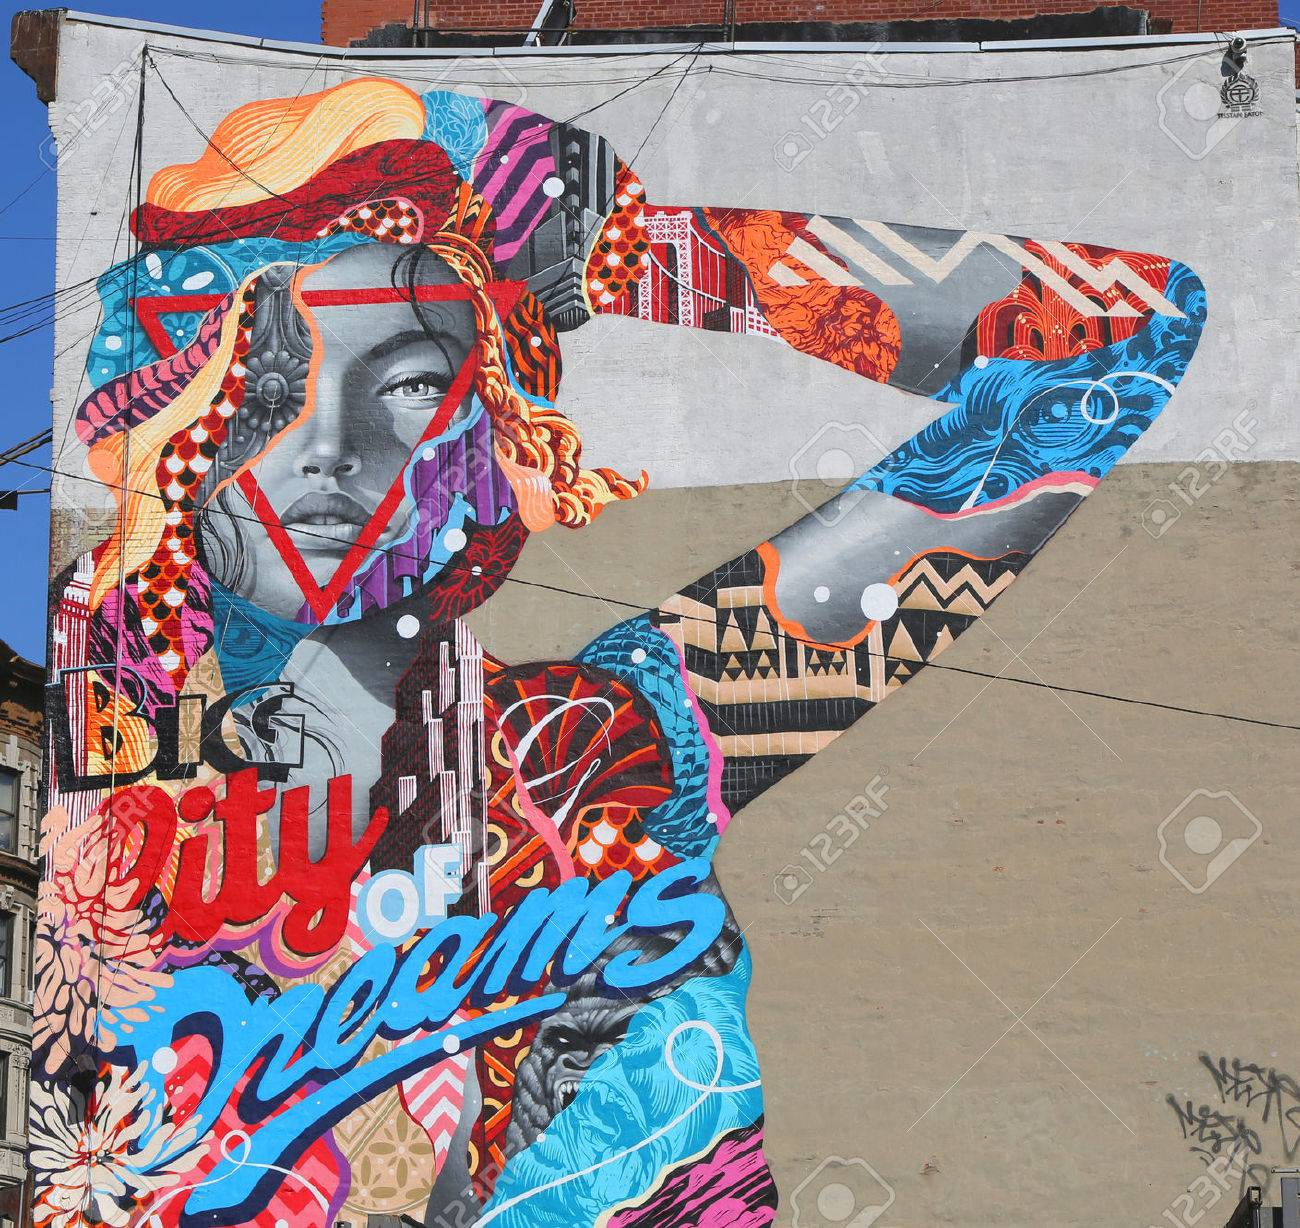 Offers one of the widest selection of digital slr's, lenses, digital backs for. New York May 14 2015 Mural Art City Of Dreams By Tristan Eaton In Little Italy Stock Photo Picture And Royalty Free Image Image 39885904